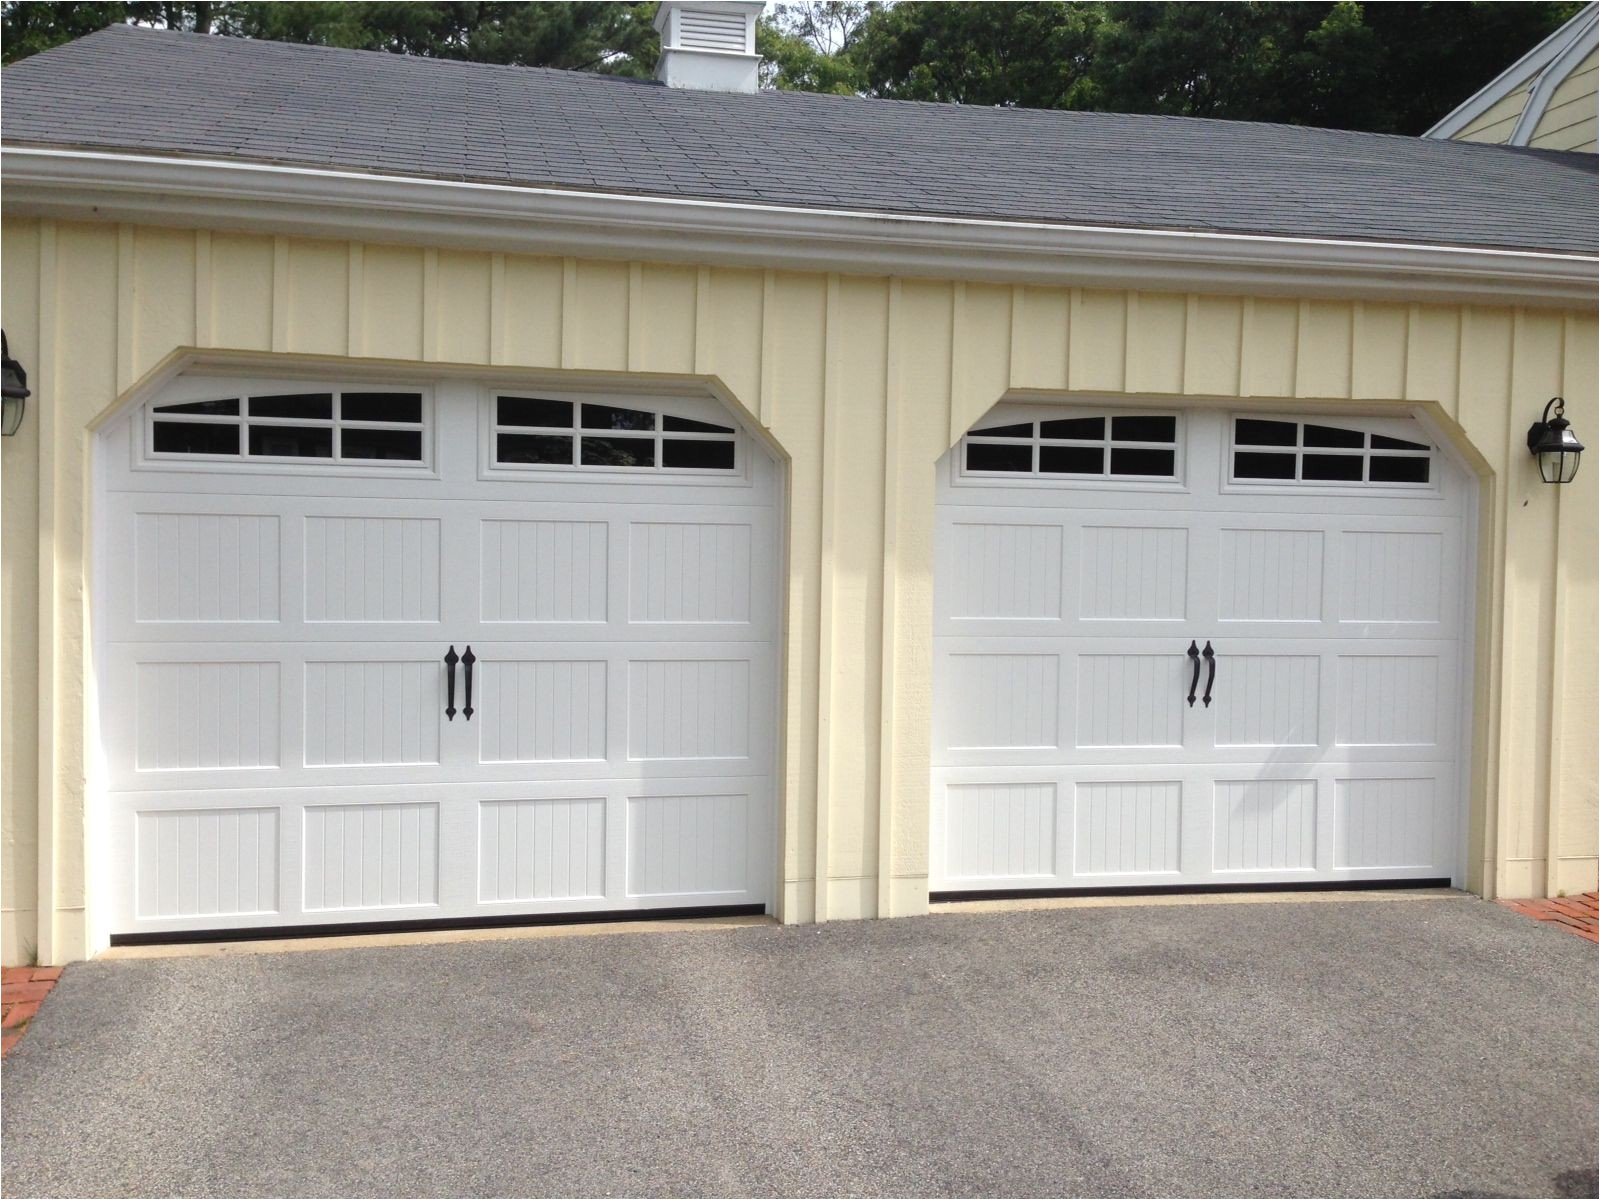 haas model 660 steel carriage house style garage doors in white with arch 6 pane glass flat black spade handles installed by mortland overhead door